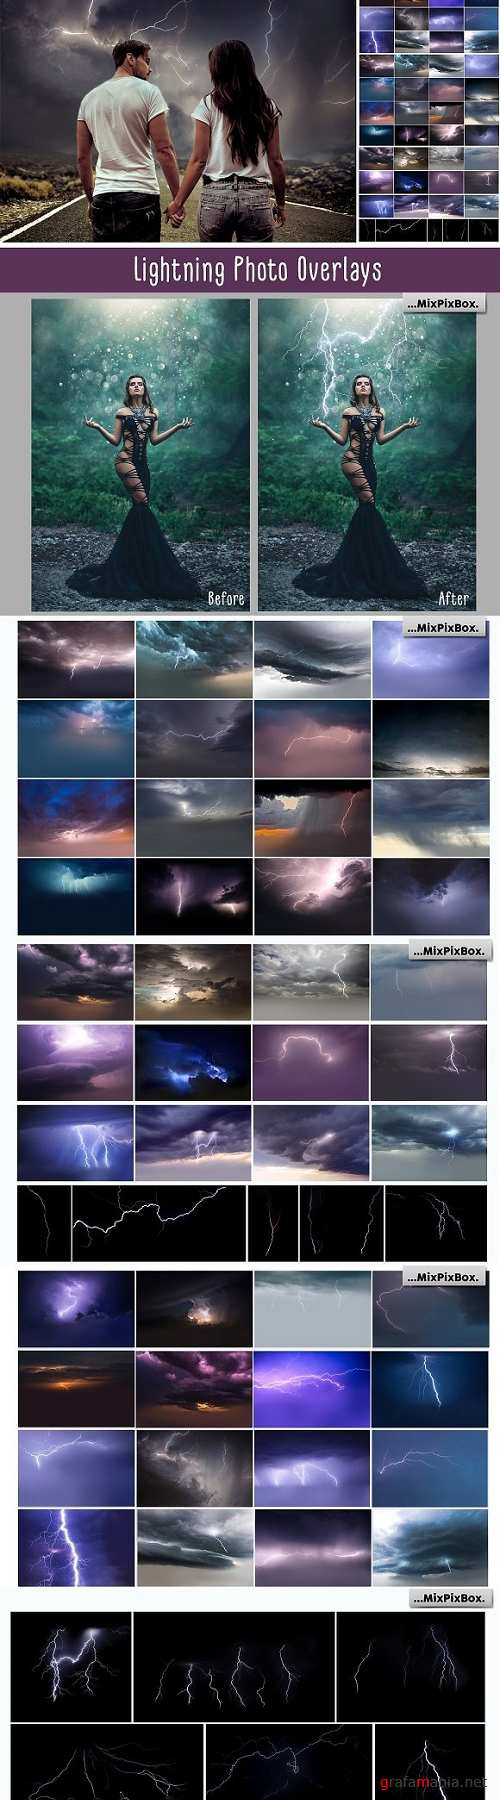 Lightning Photo Overlays - 2341348